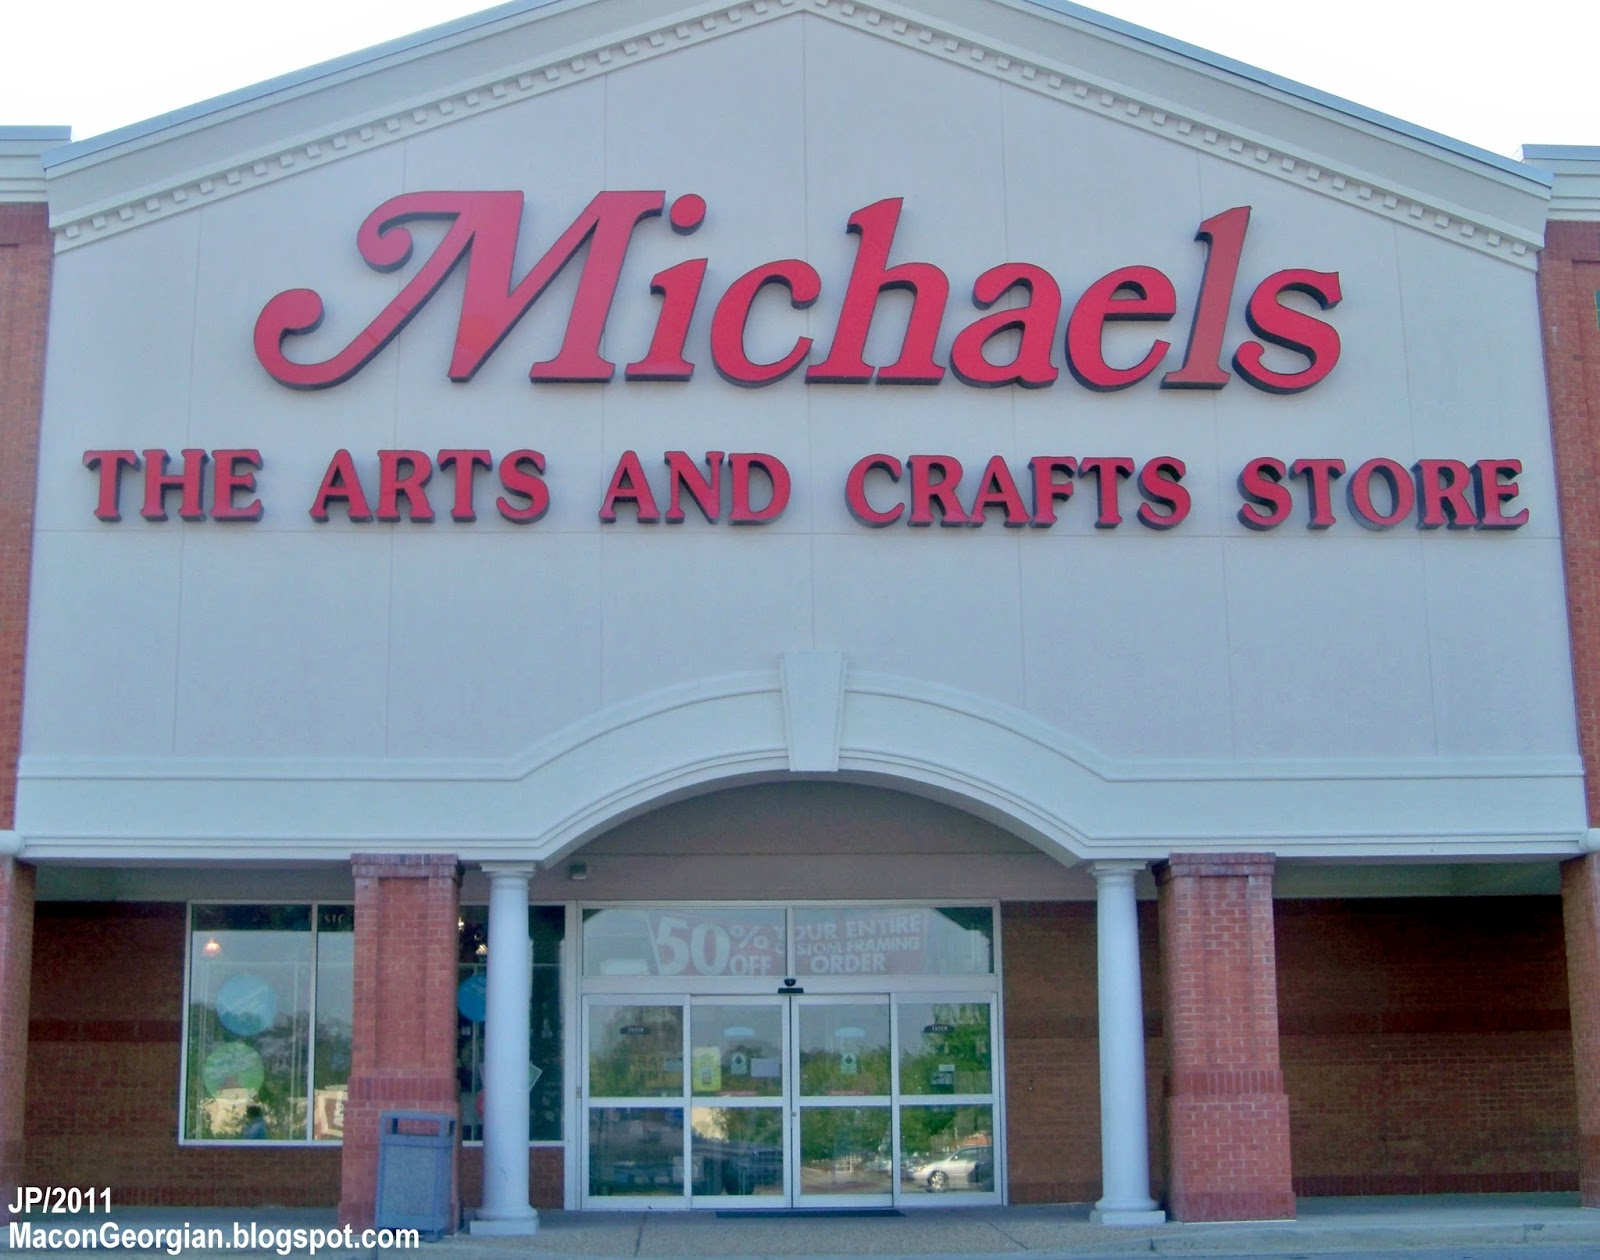 Michaels' craft classes and events include craft projects and demonstrations that are held at Michaels craft stores. There are classes for adults and children, as .